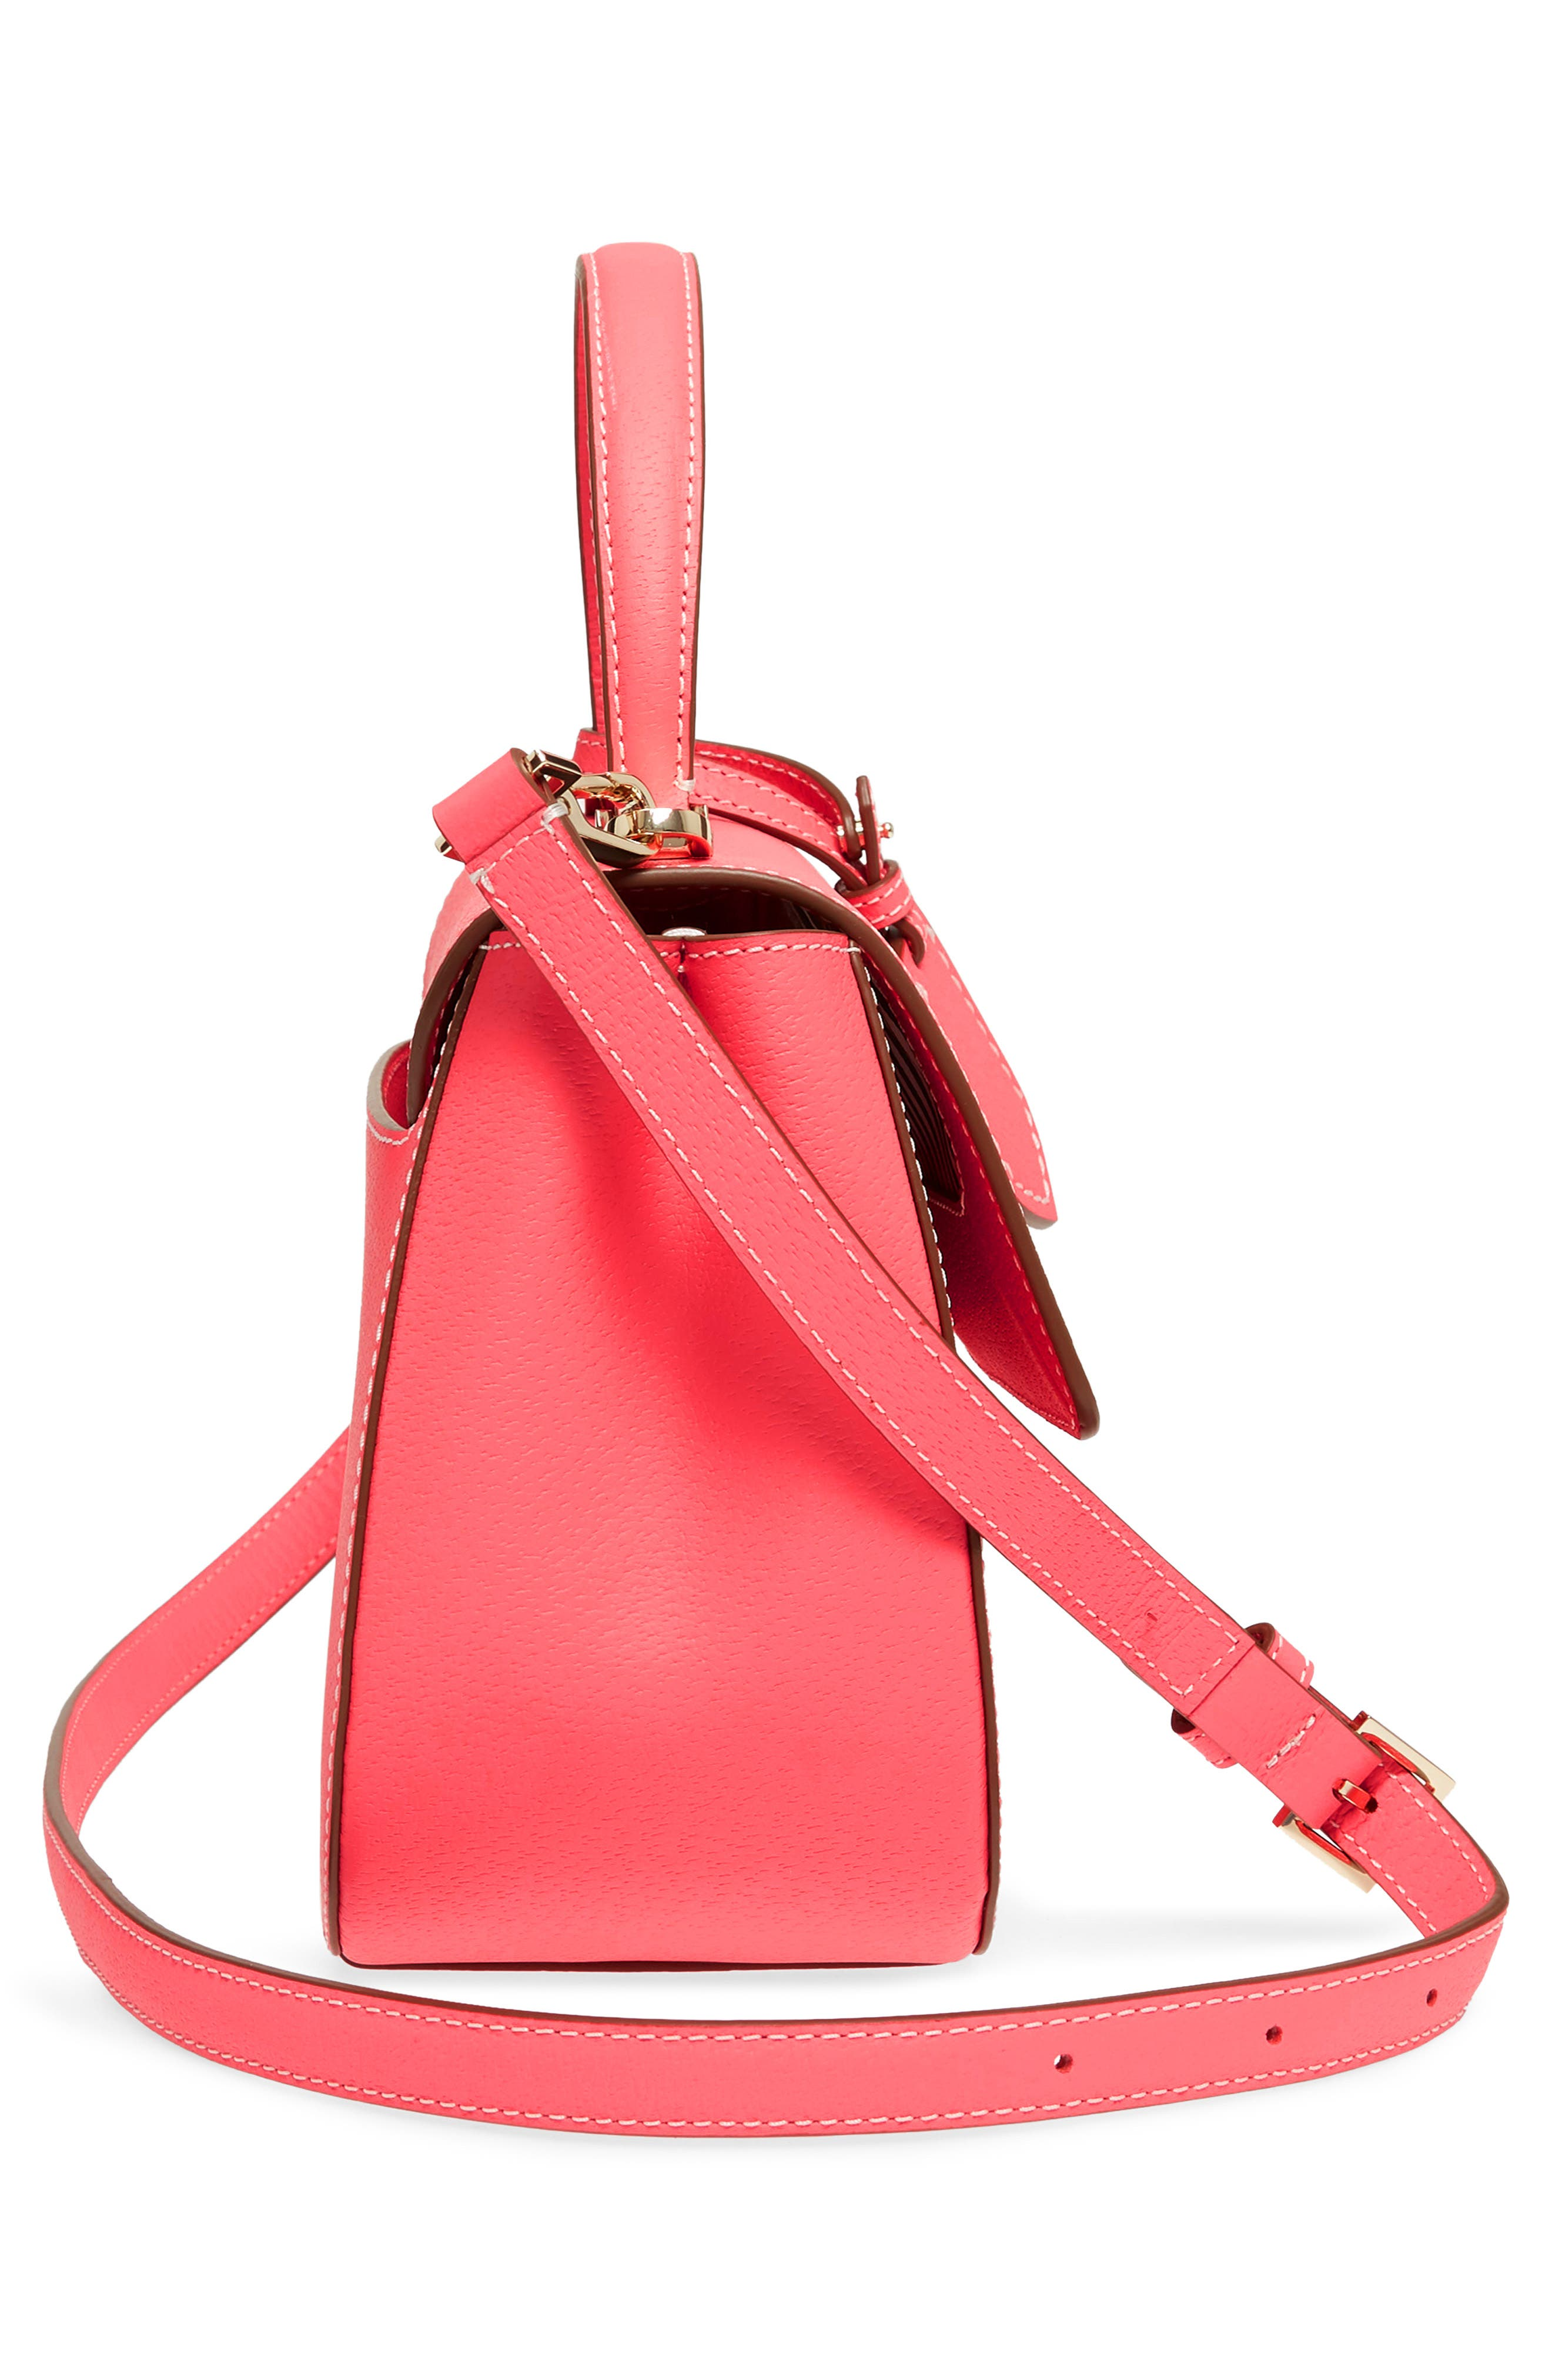 thompson street - justina leather satchel,                             Alternate thumbnail 5, color,                             Bright Flamingo